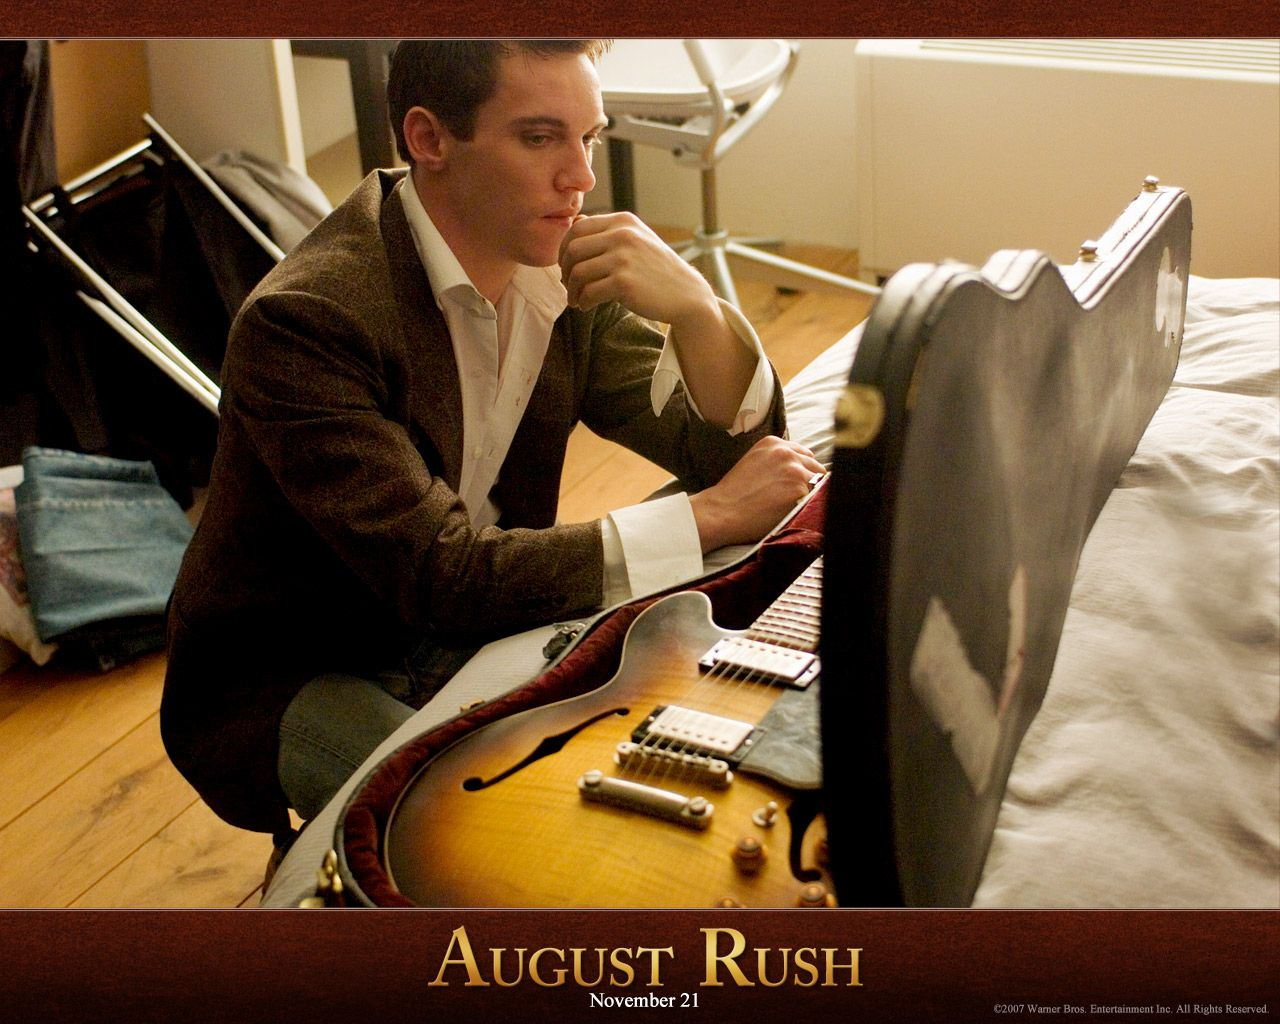 august rush full movie download free